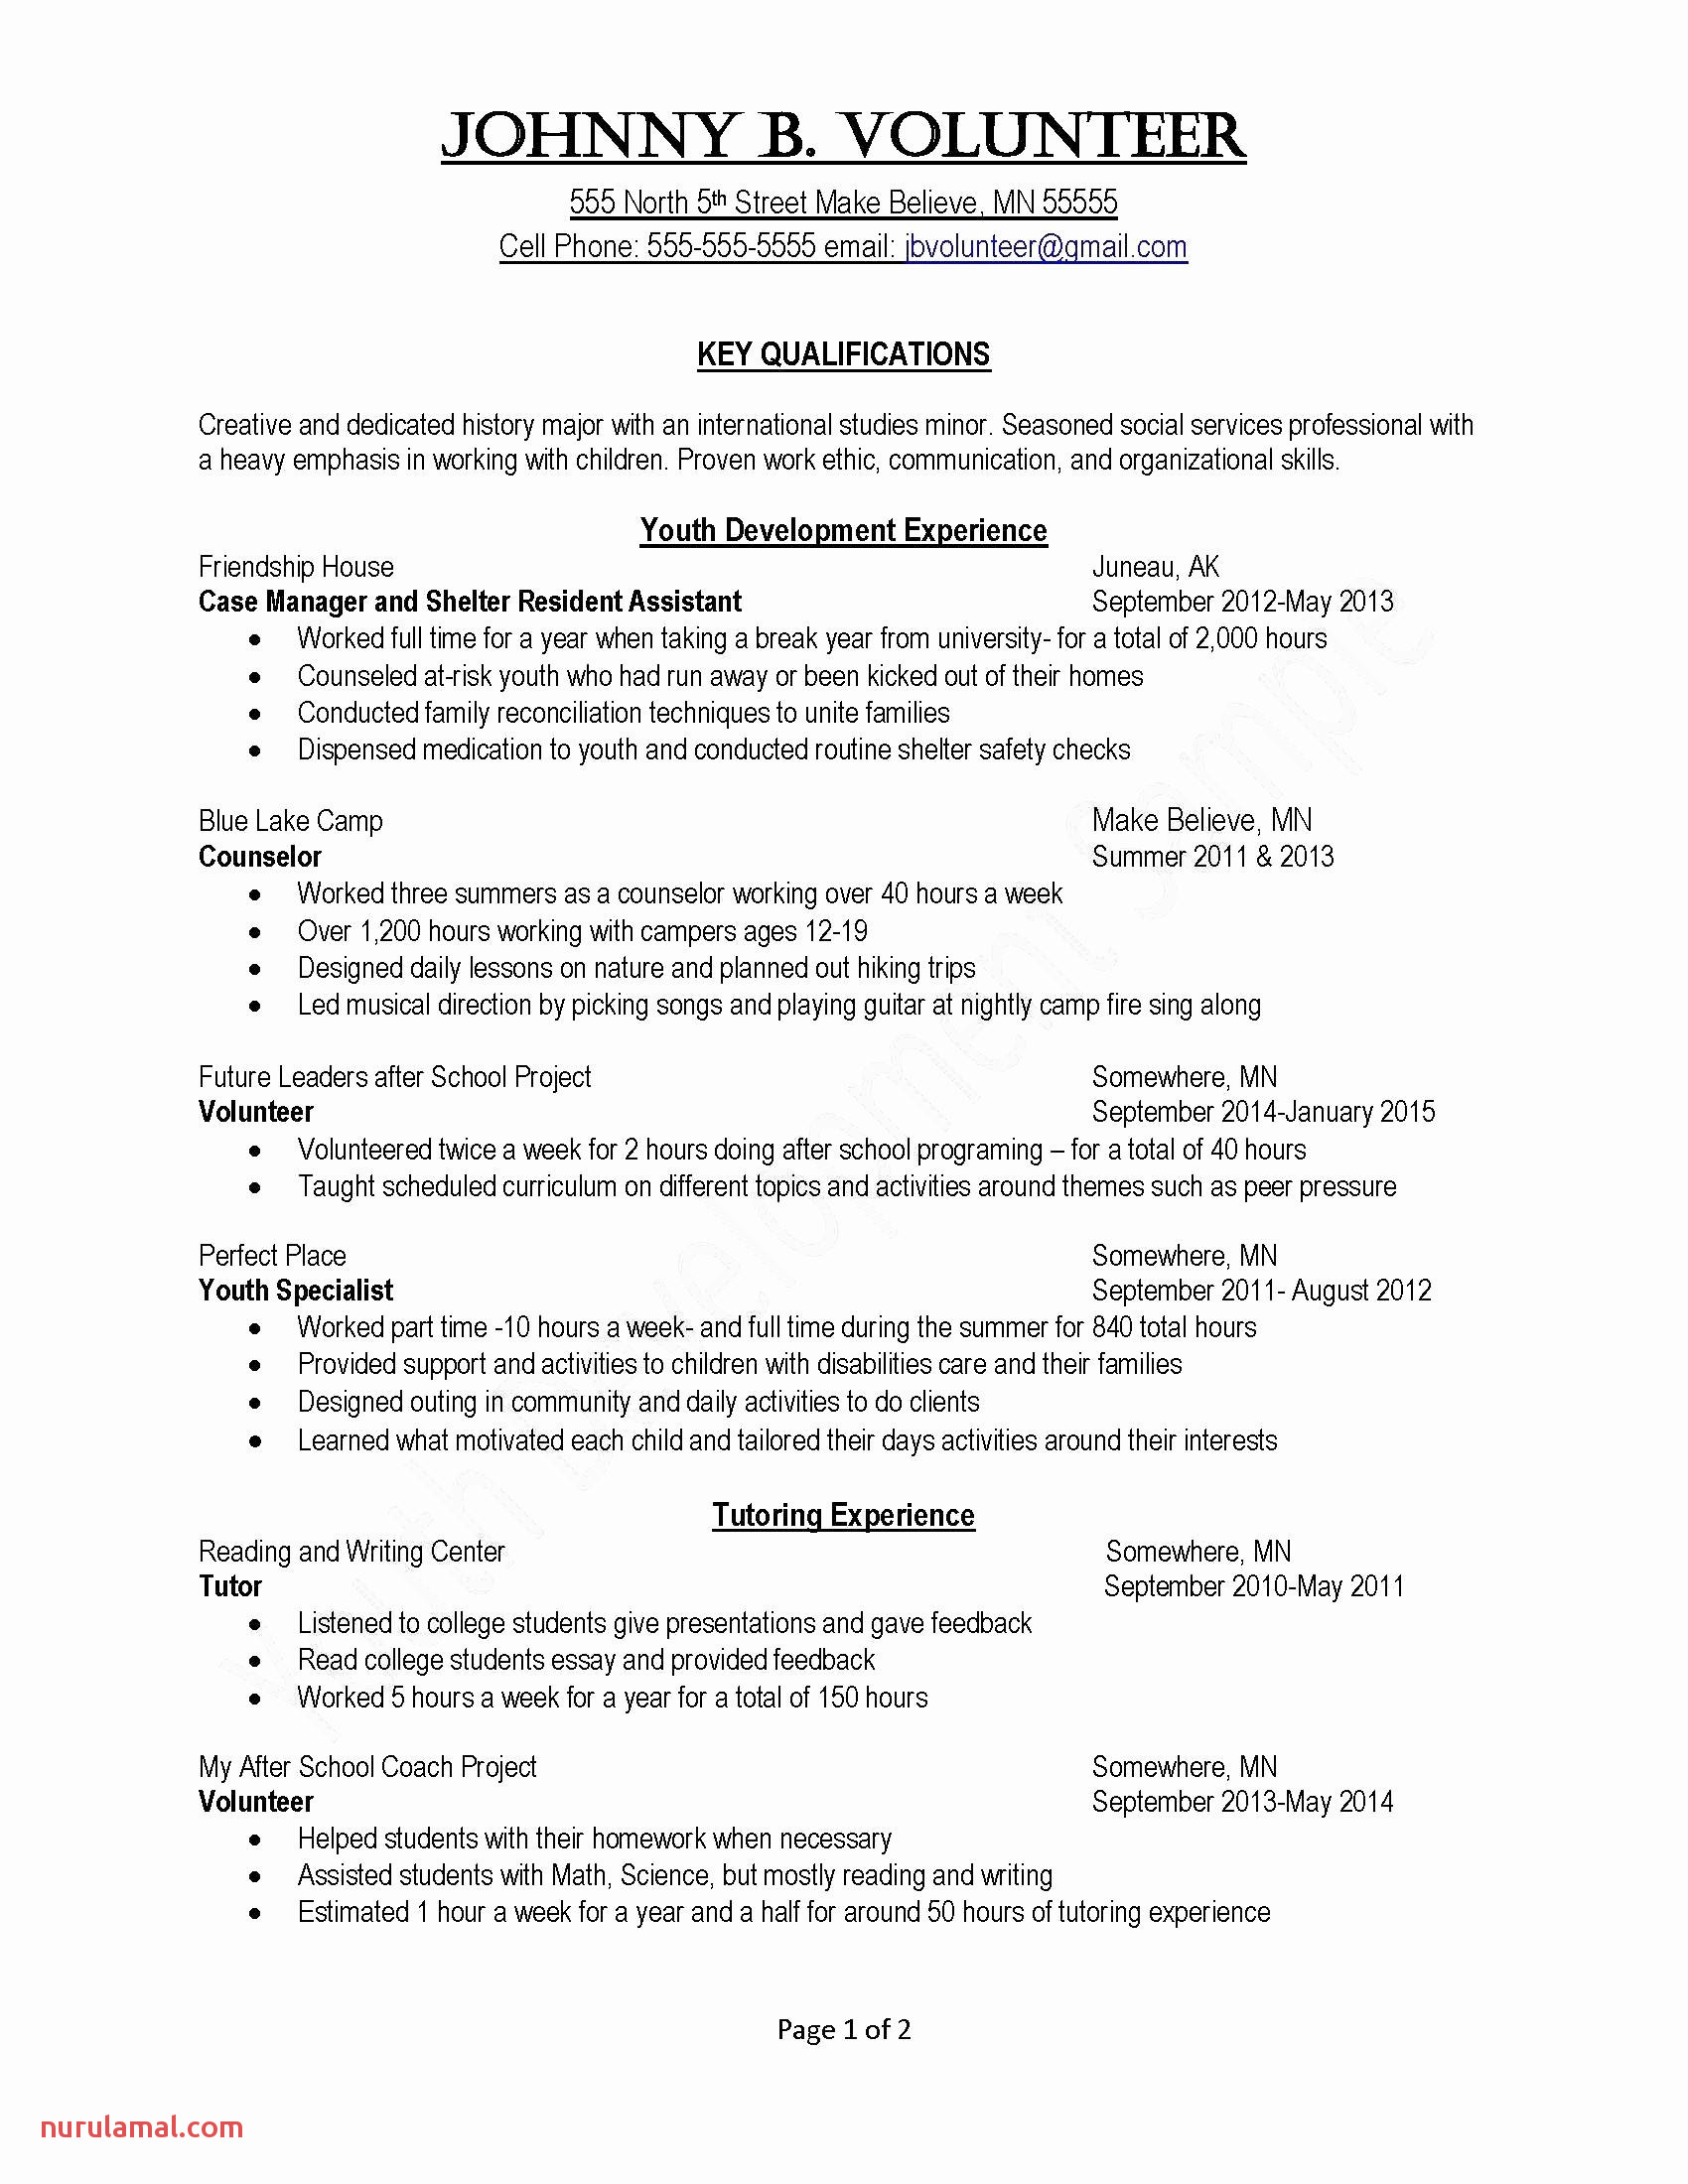 papercraft letters how to do cover letter best subpoena cover letter awesome od